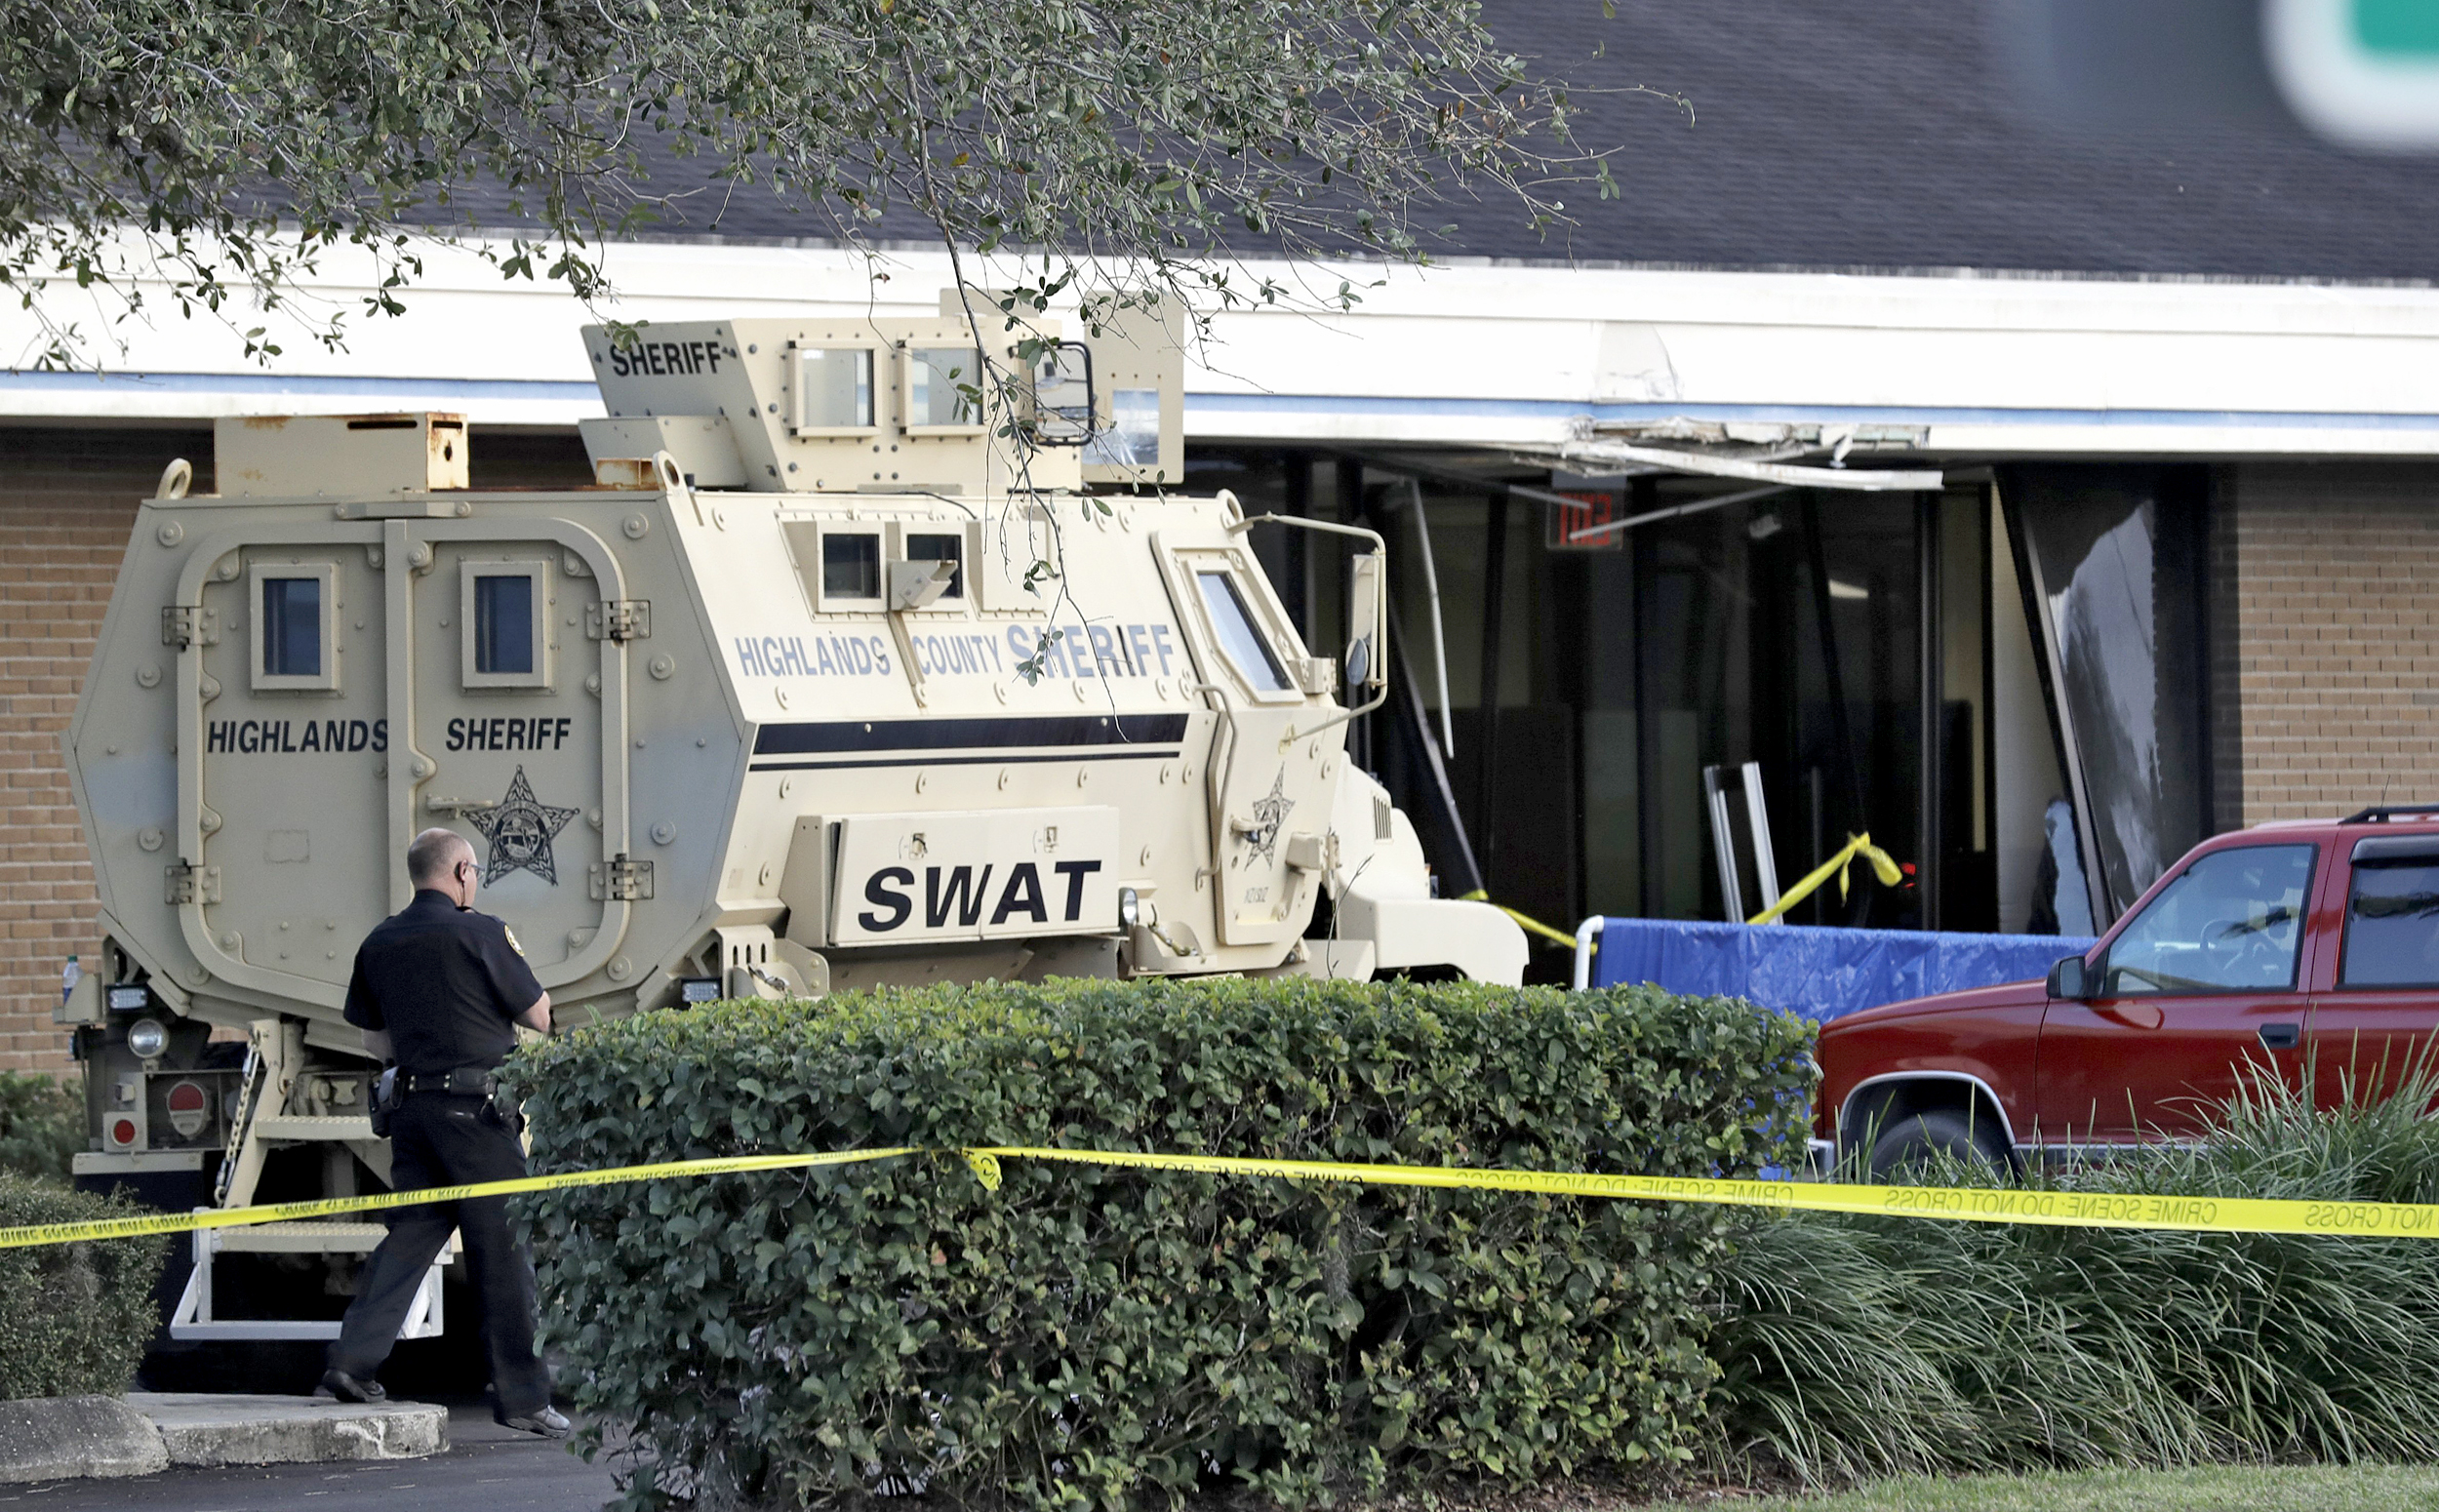 Five people shot dead at SunTrust Bank in Florida, suspect in custody